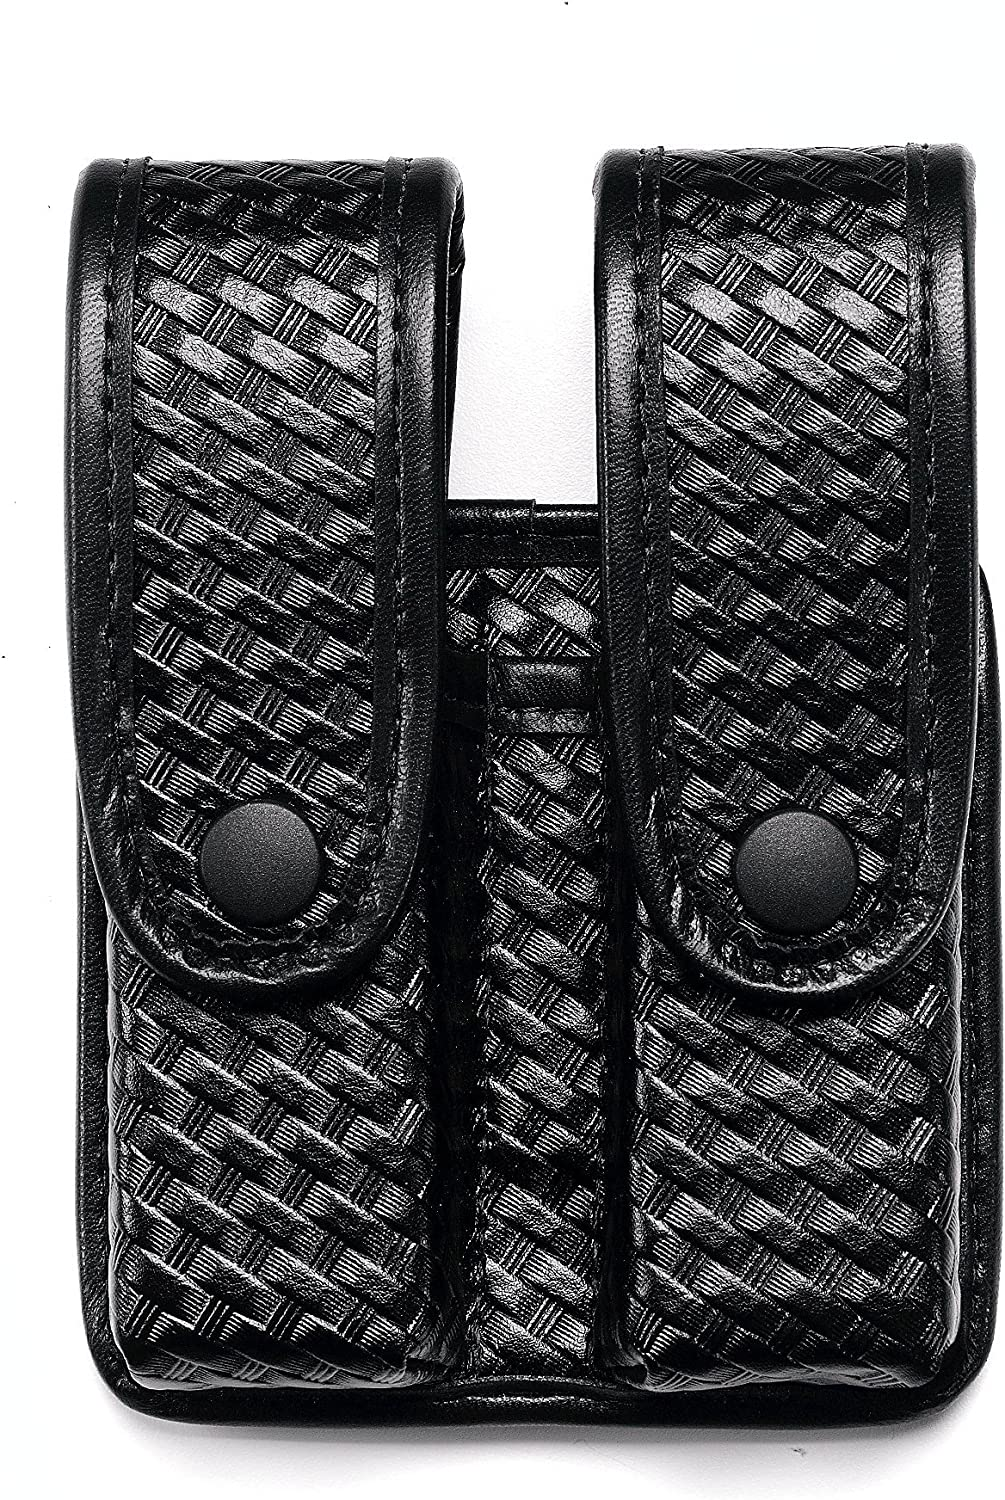 UNCLE MIKE'S Mirage Basketweave Double Stack Duty Divided Double Mag Case, Black